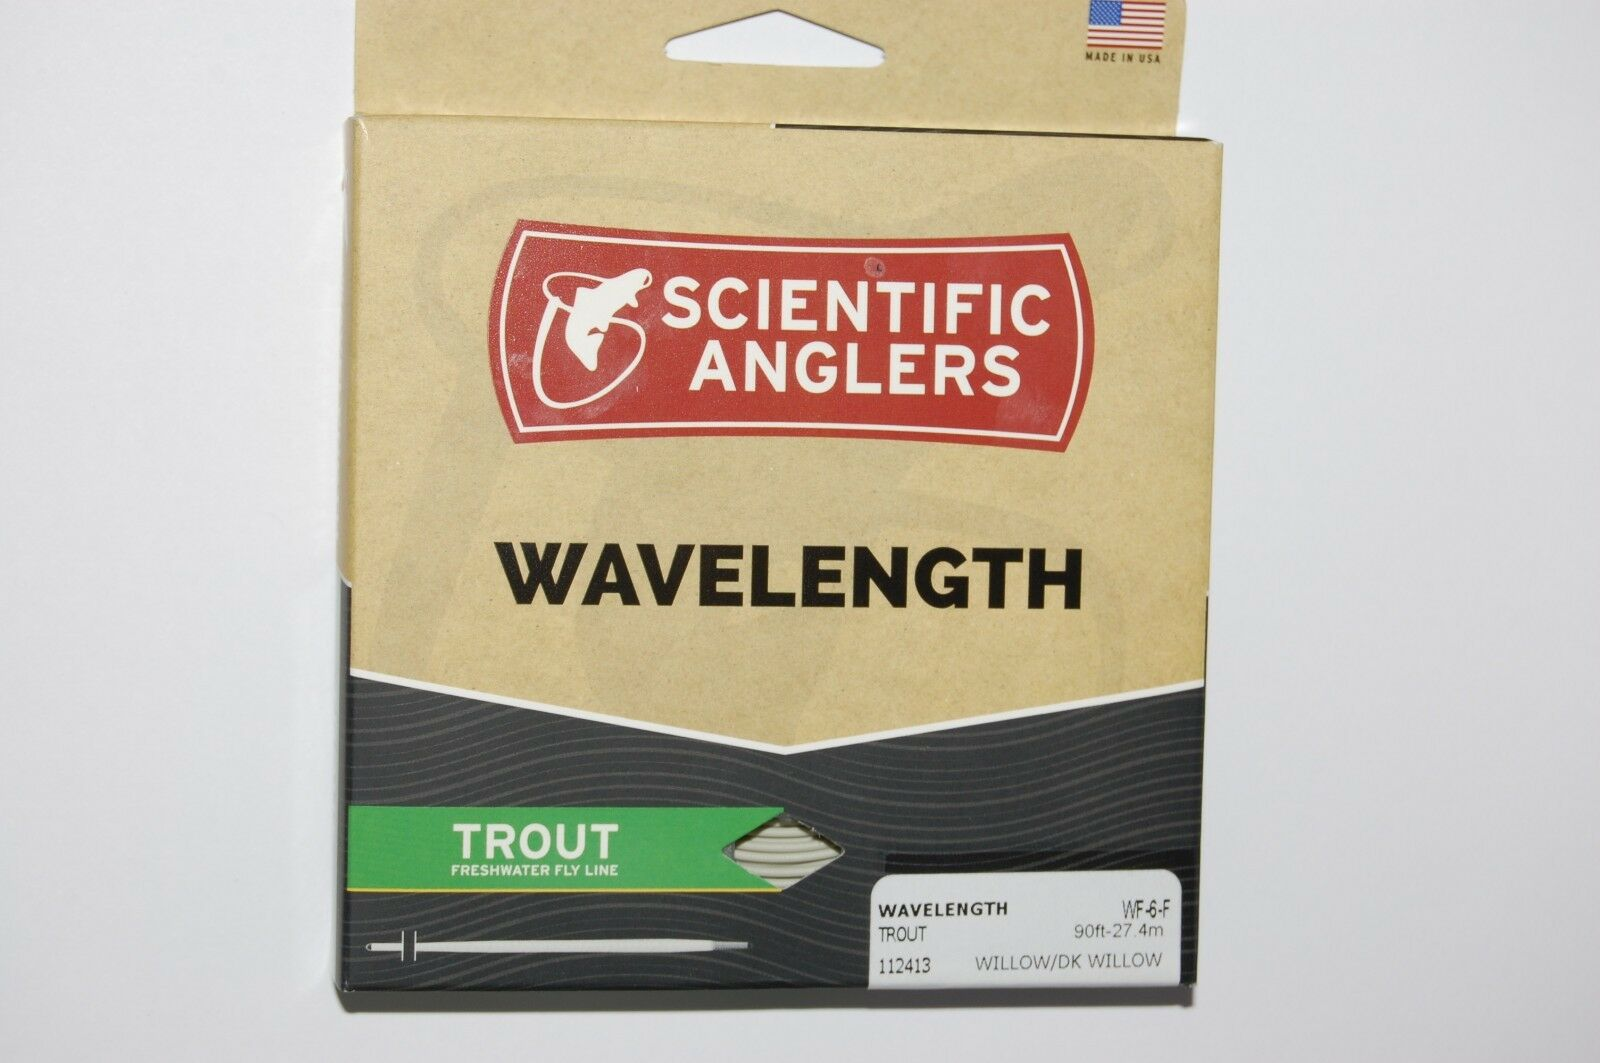 Scientific anglers wavelongueur trout freshwater fly line wf-6-f wilFaible dk 90ft